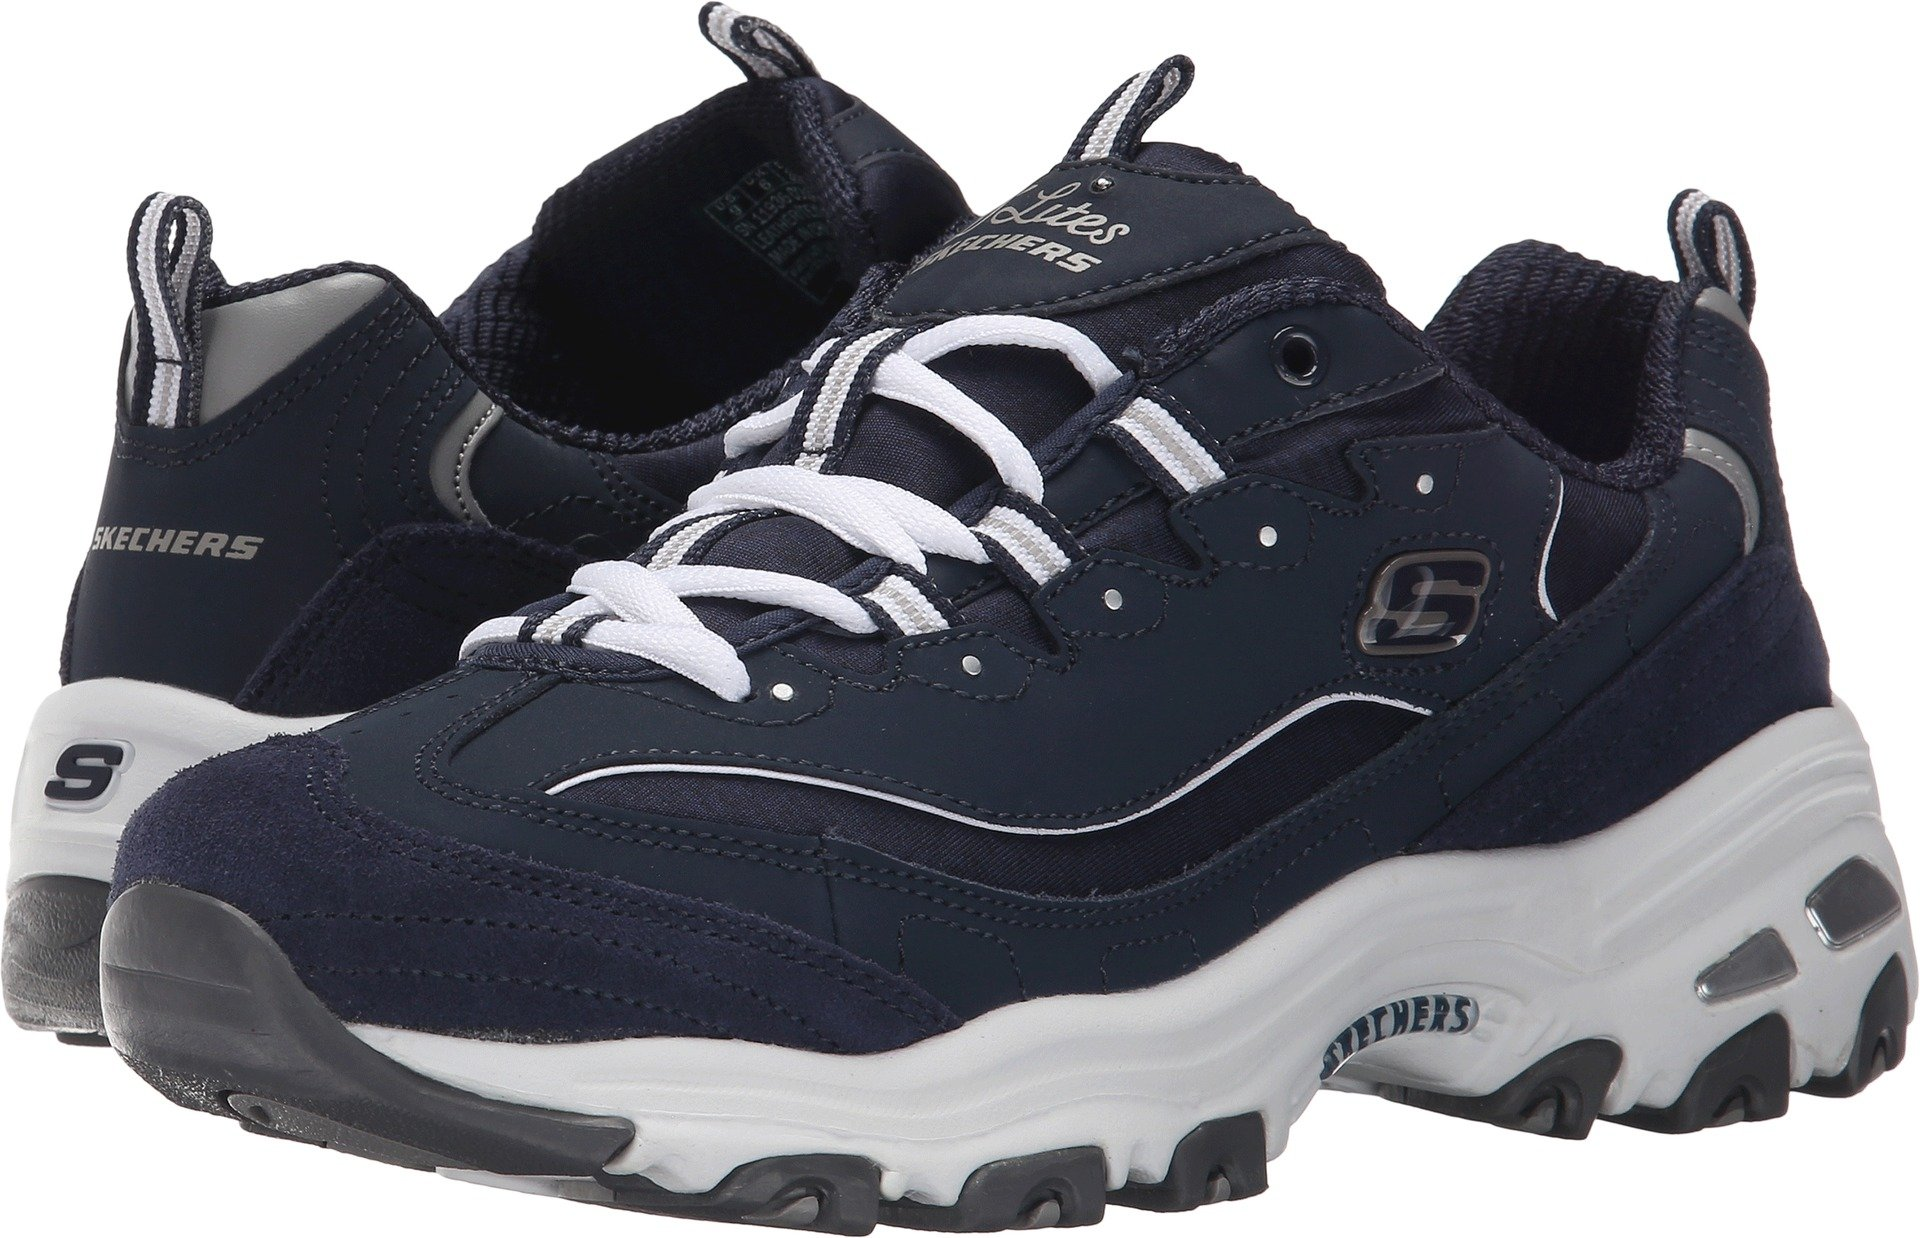 Skechers Women's D'Lites Sneaker,Me Time/Navy/White,US 12 M